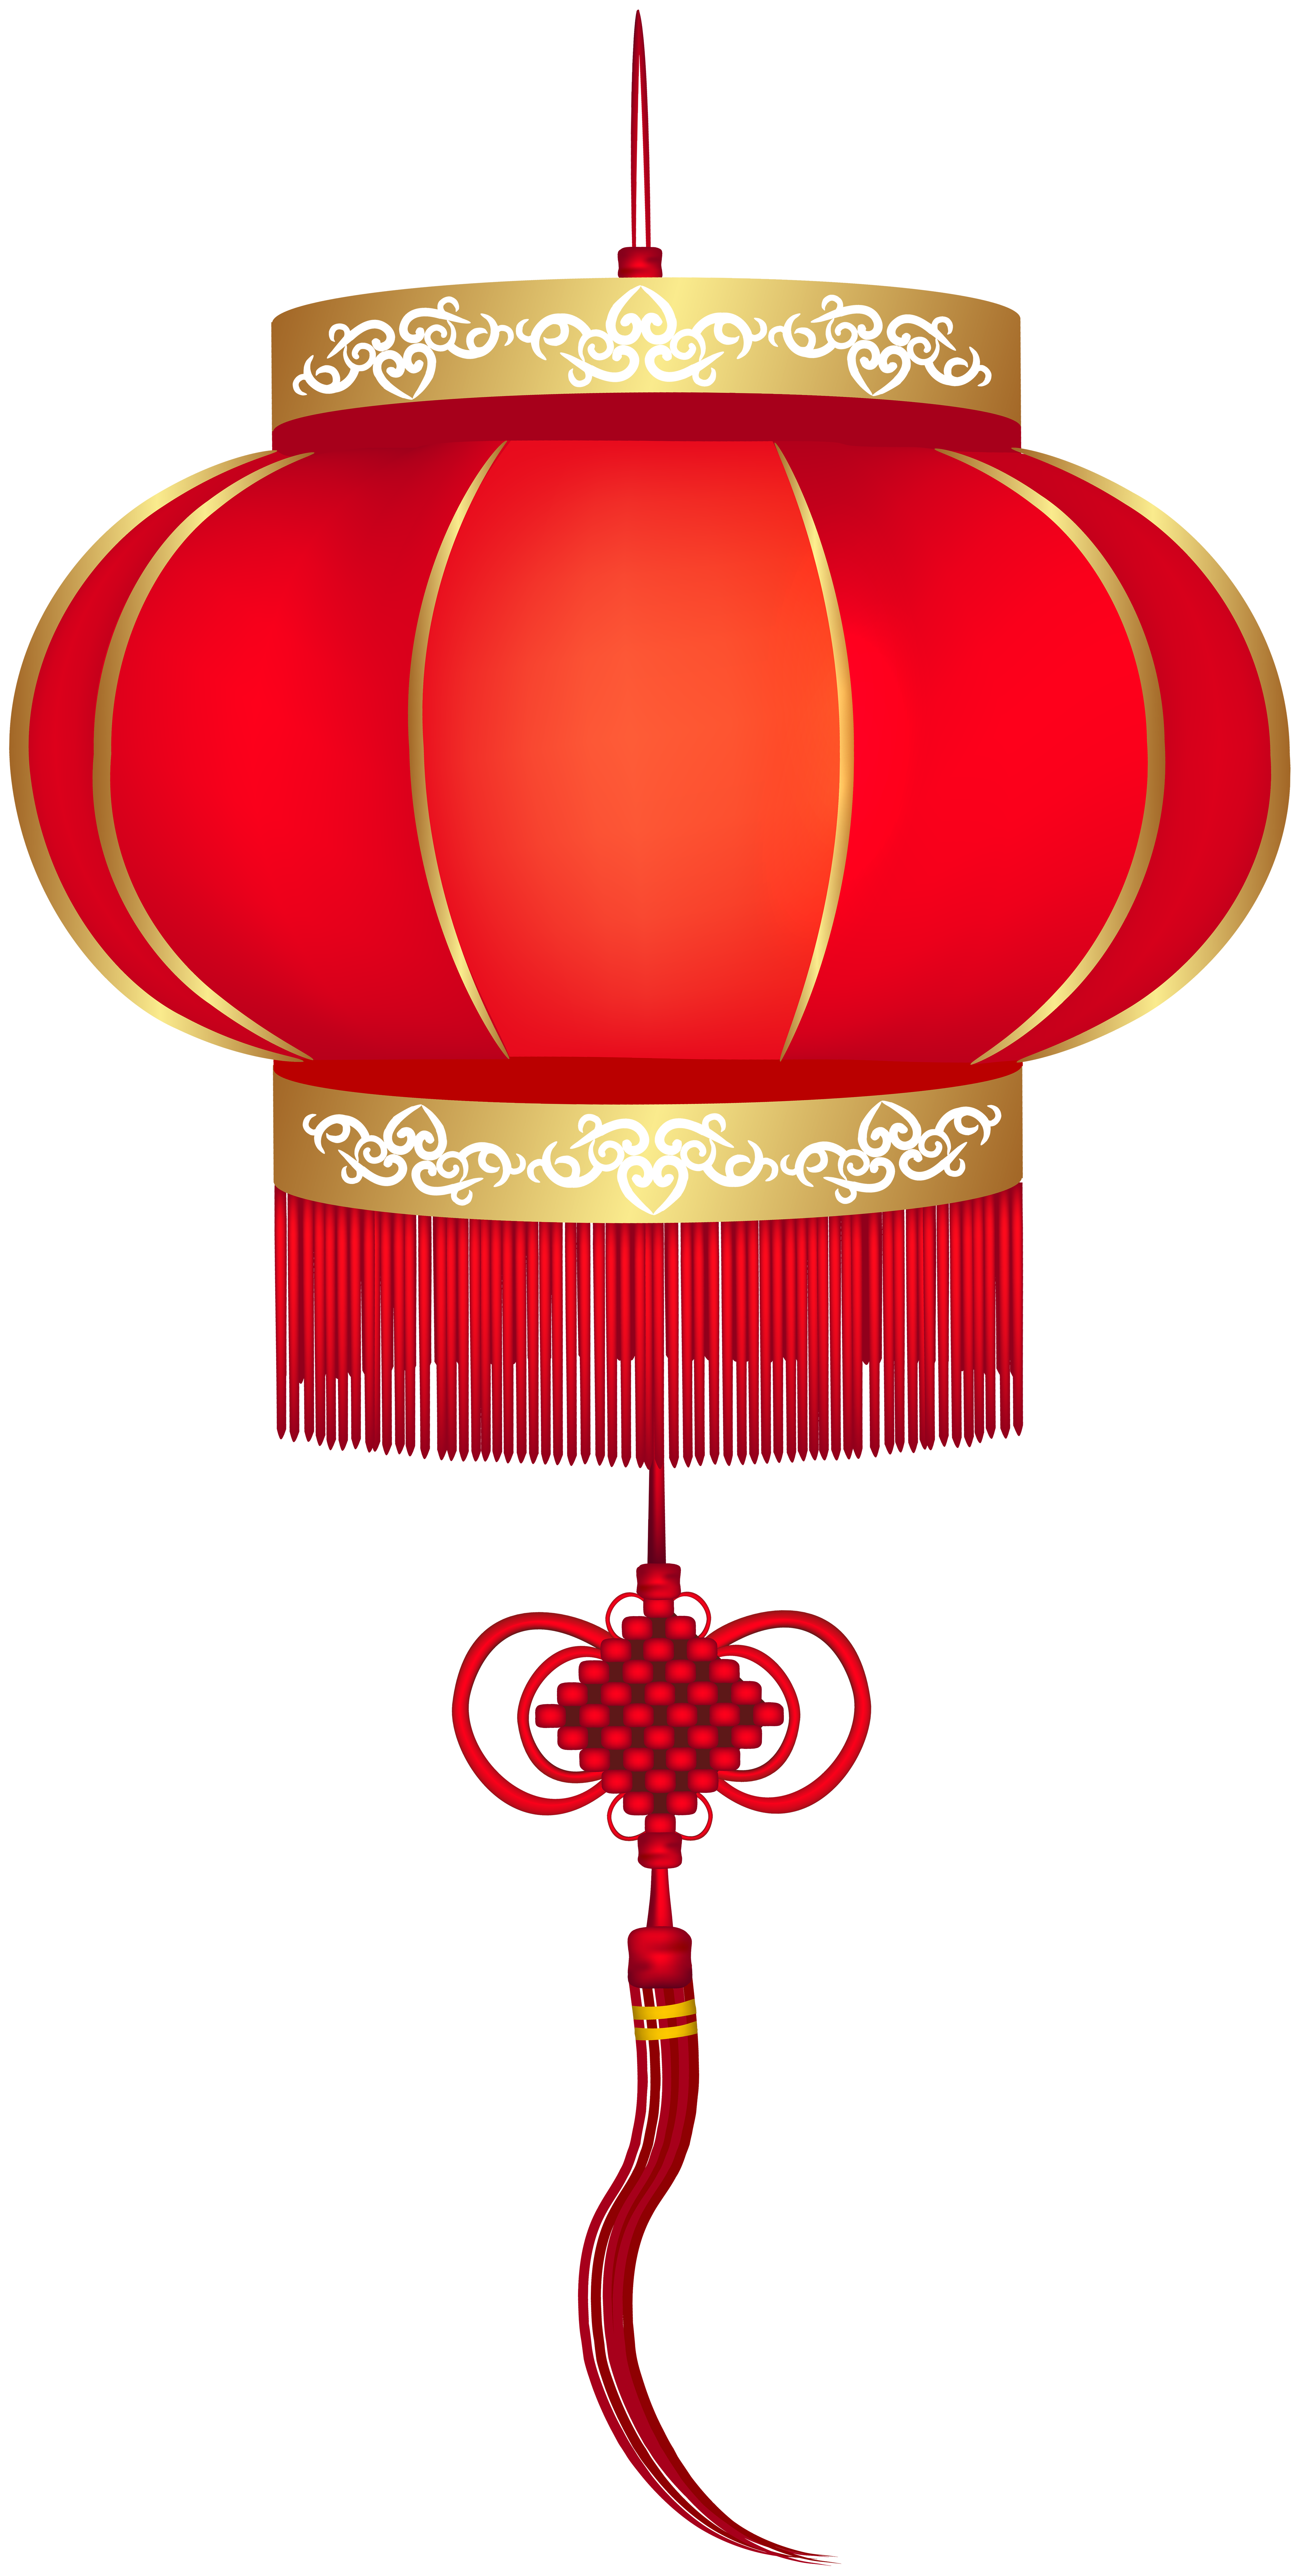 Chinese Png Chinese New Year Poster Chinese New Year Decorations Chinese New Year Design